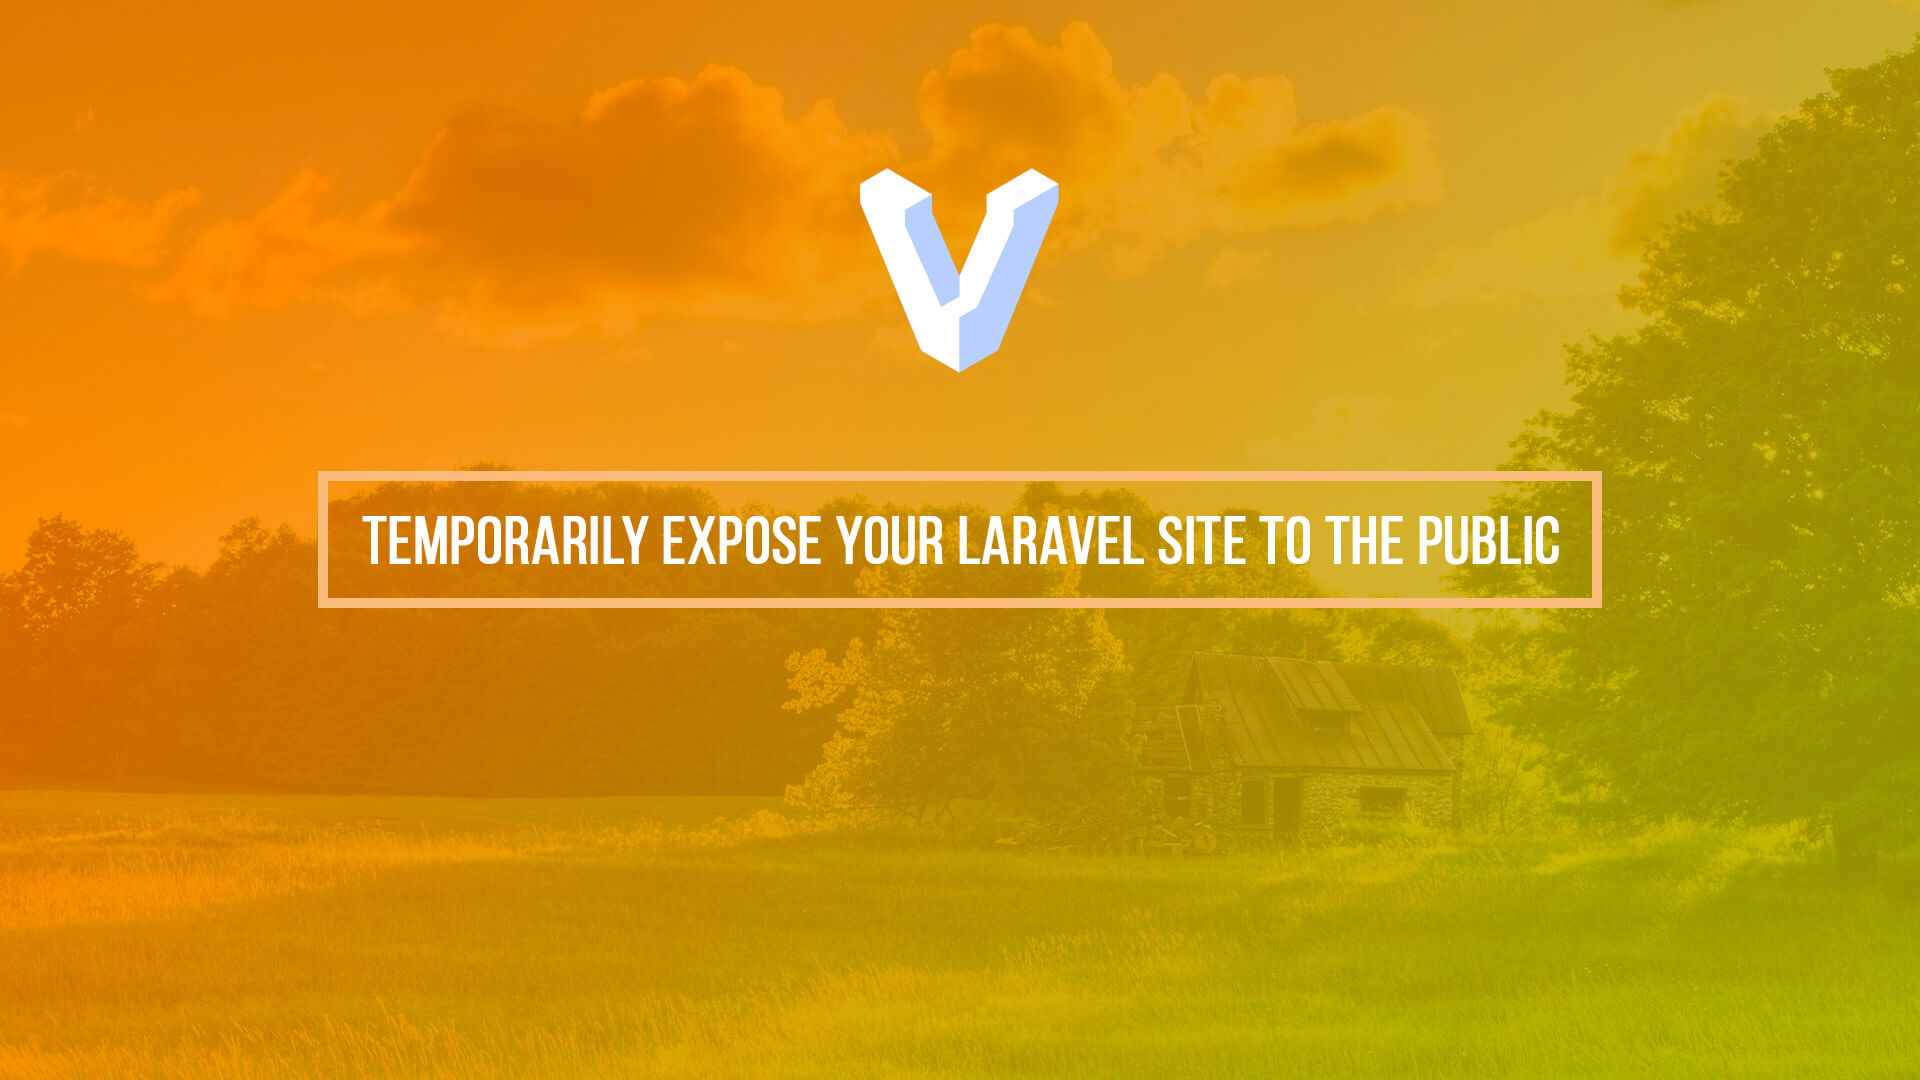 Temporarily expose your Laravel site to the public